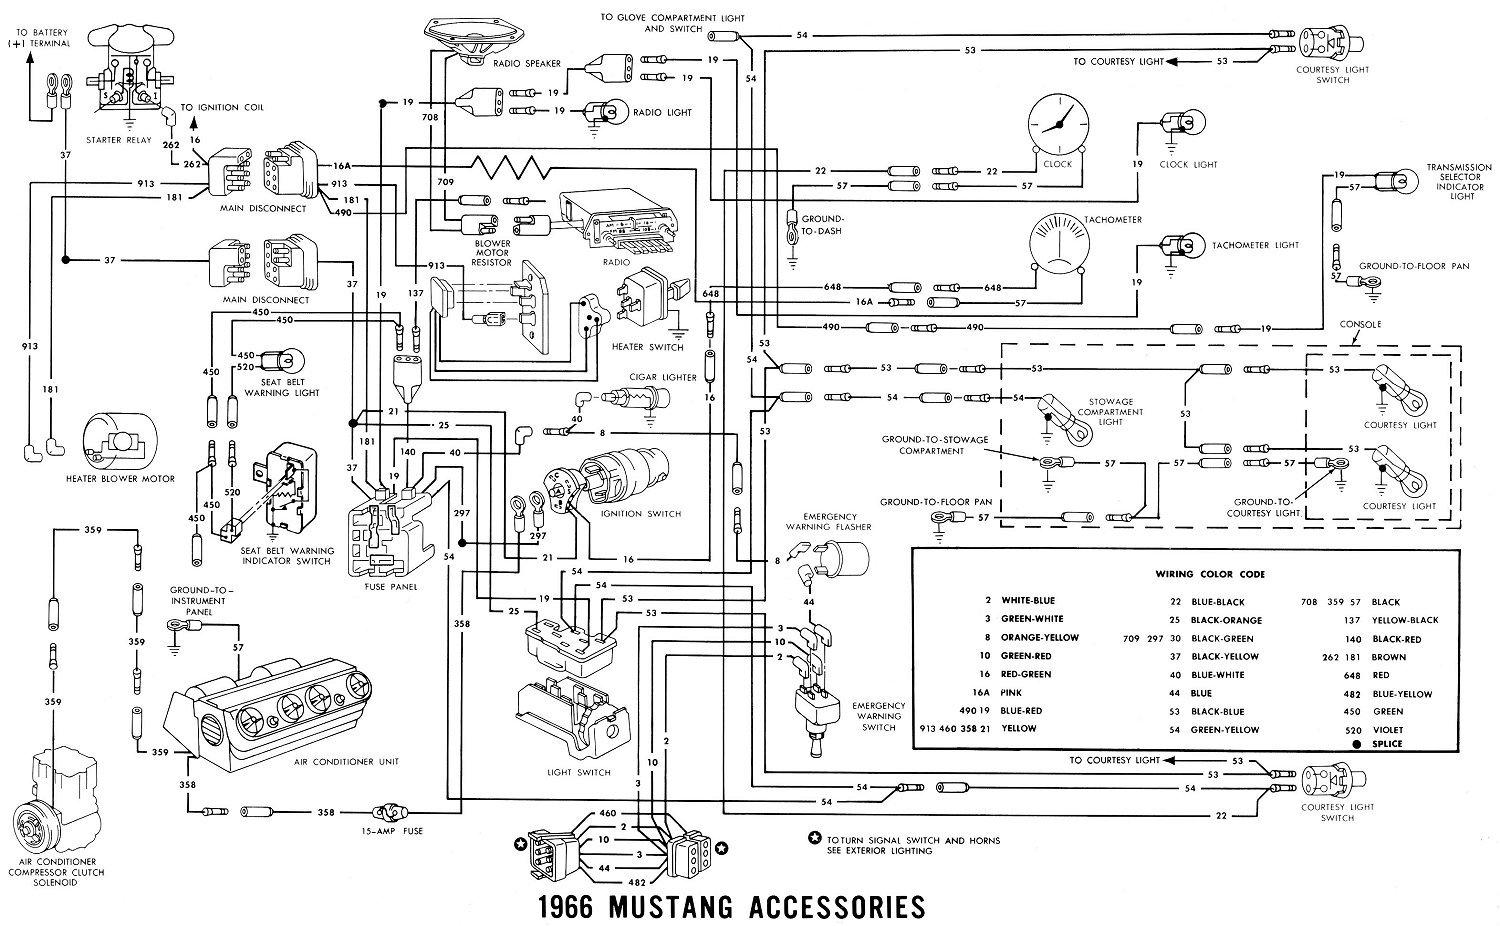 66acces1 1969 mustang dash wiring diagram 1969 mustang wiring routing 2005 ford mustang instrument cluster wiring diagram at crackthecode.co